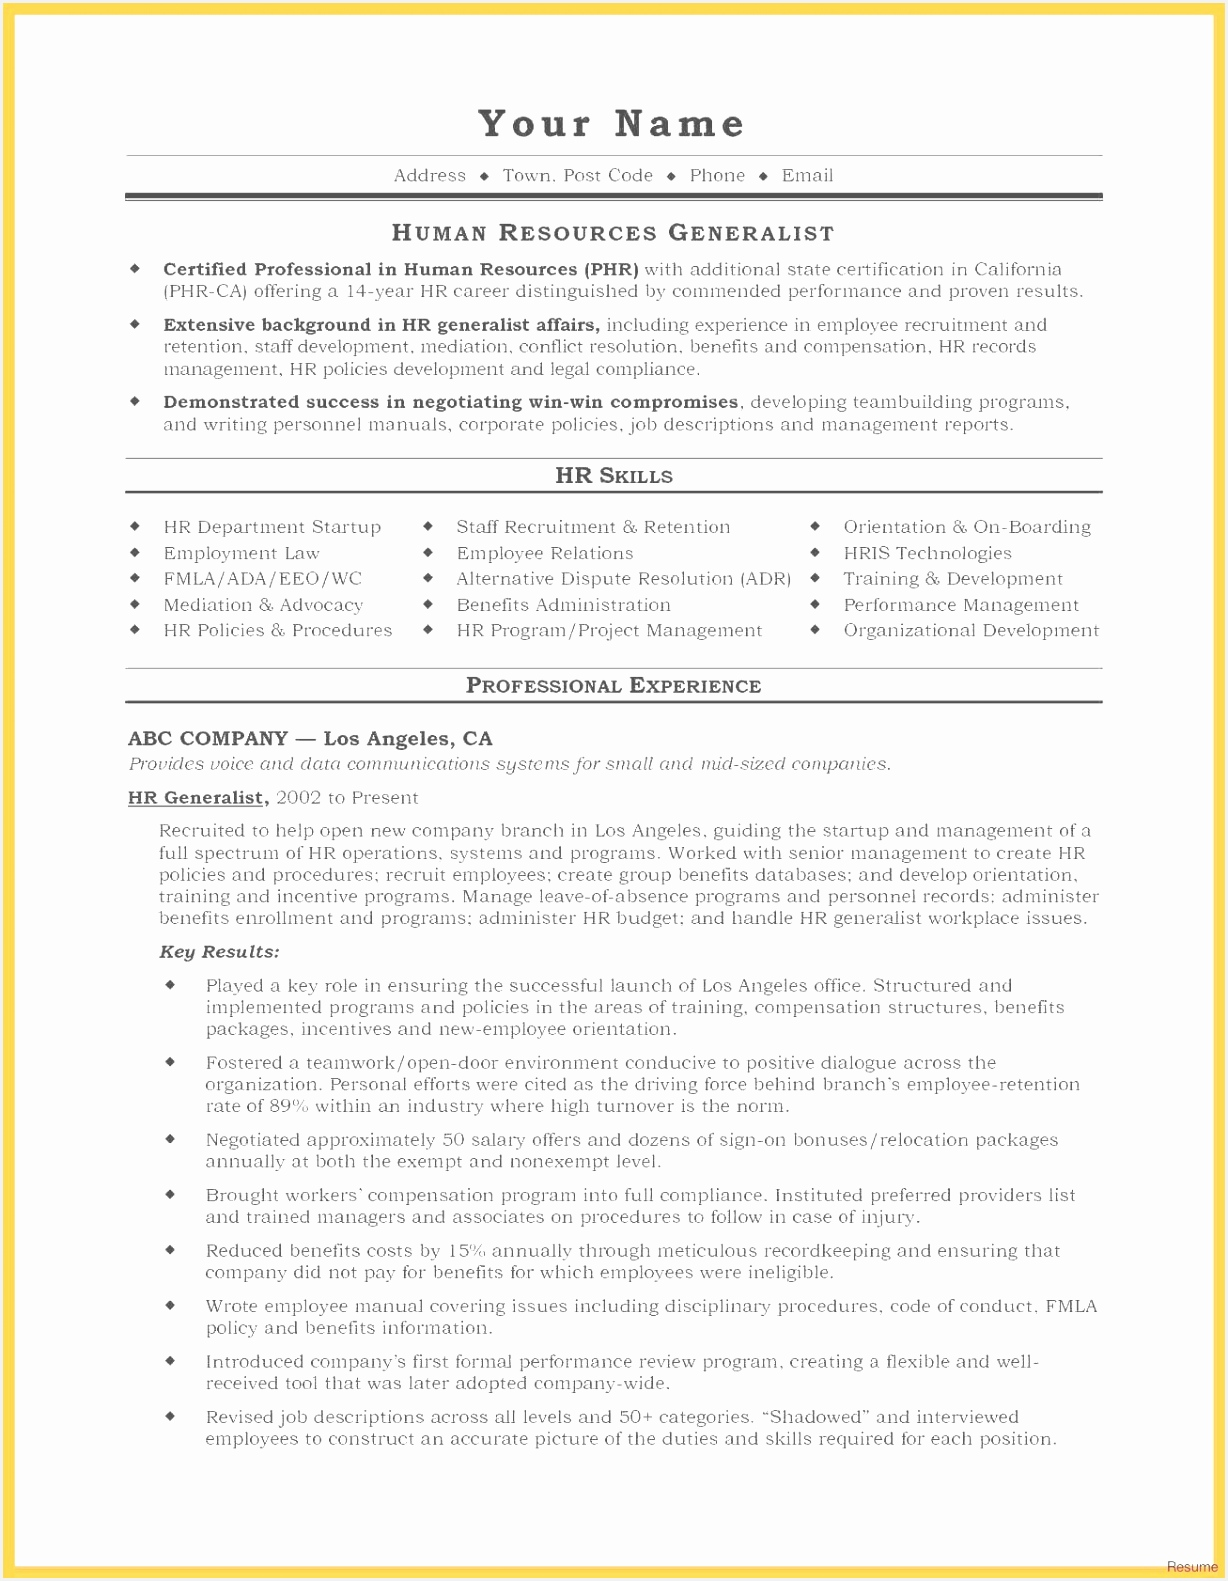 resume samples for supervisor positions new residential property manager resume samples bsw resume 0d property of resume samples for supervisor positions 15811228nbhau